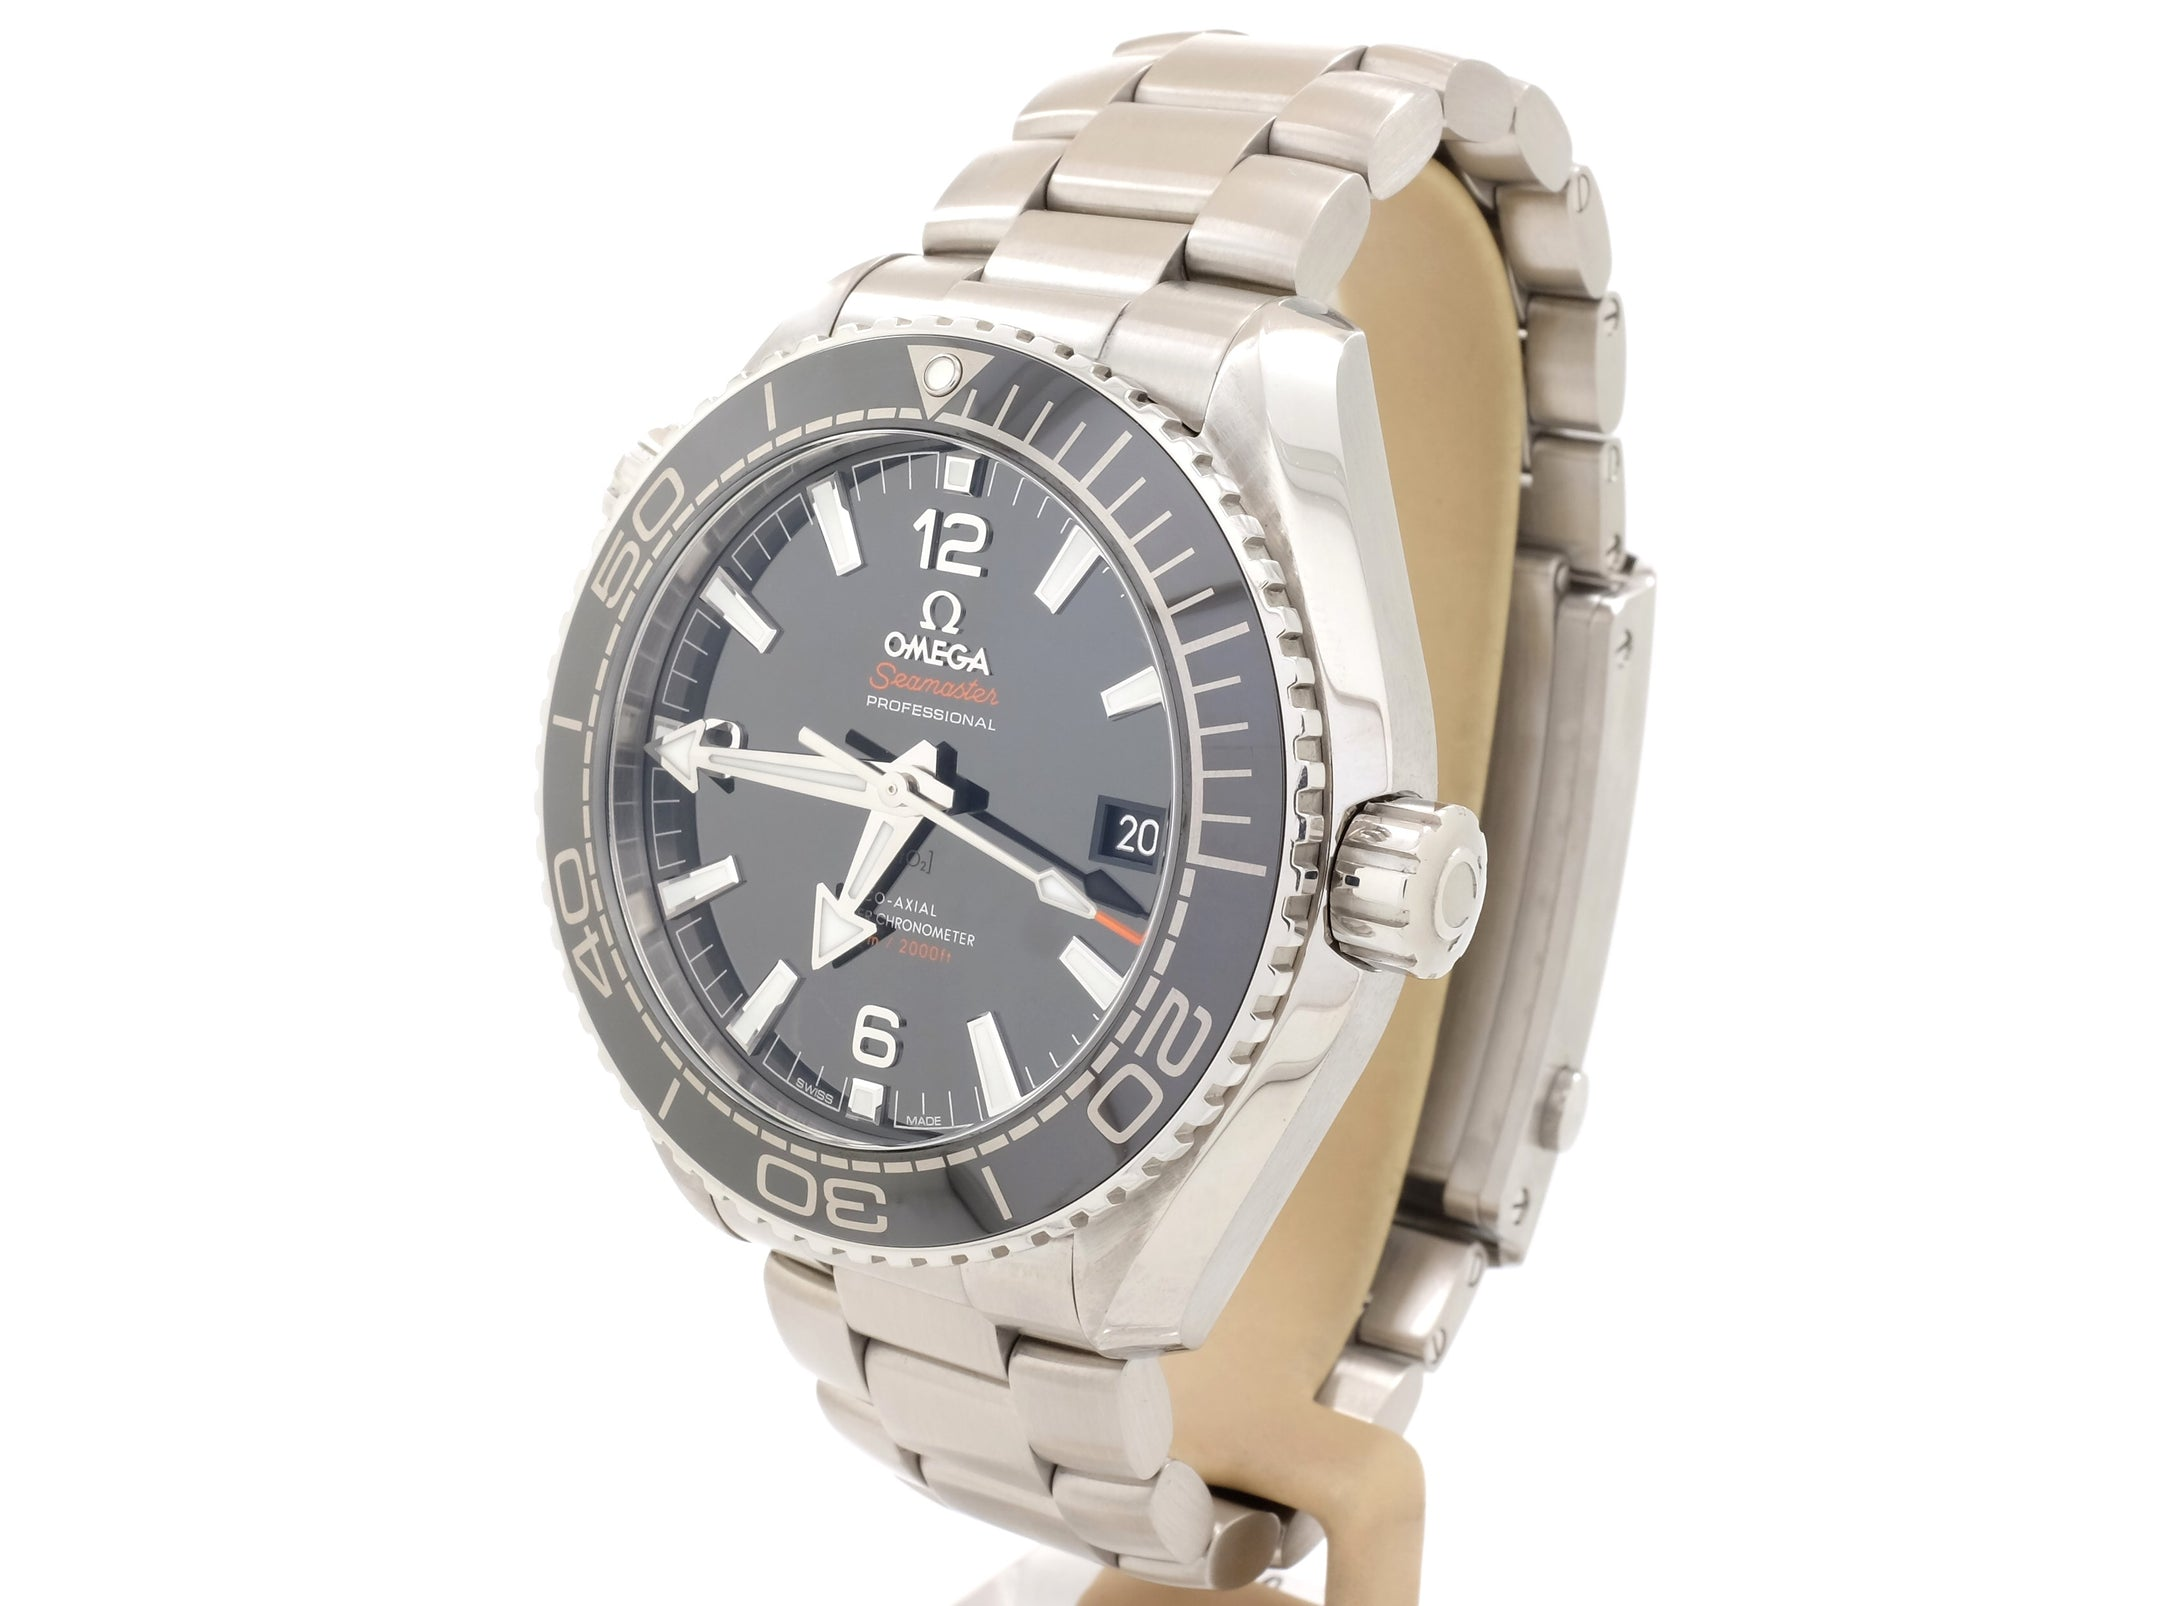 2016 Omega Seamaster PLANET OCEAN 600M Co‑Axial Master Chronometer 43mm 215.30.44.21.01.001